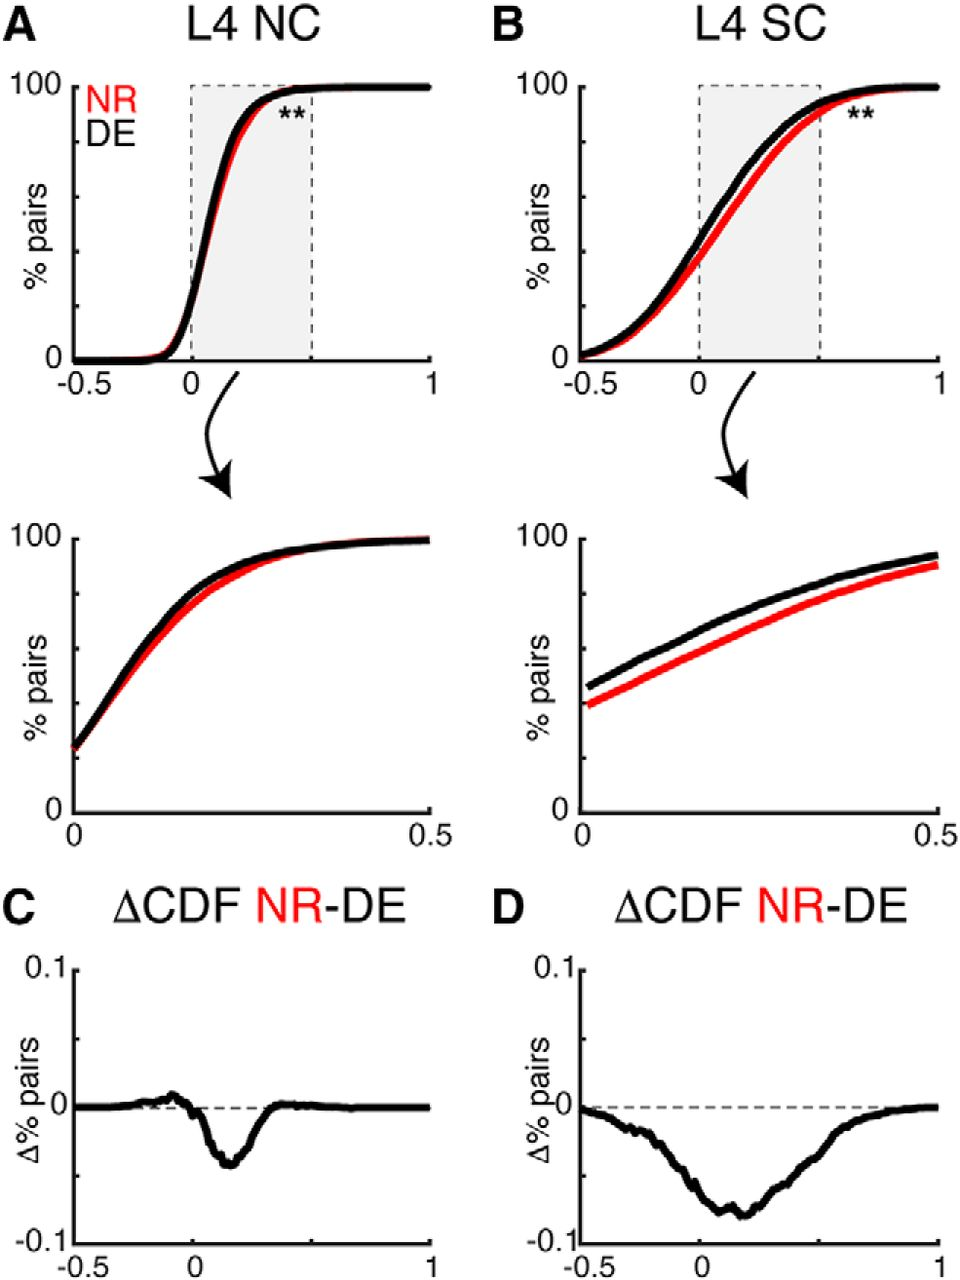 Temporary Visual Deprivation Causes Decorrelation Of Spatiotemporal Population Responses In Adult Mouse Auditory Cortex Eneuro